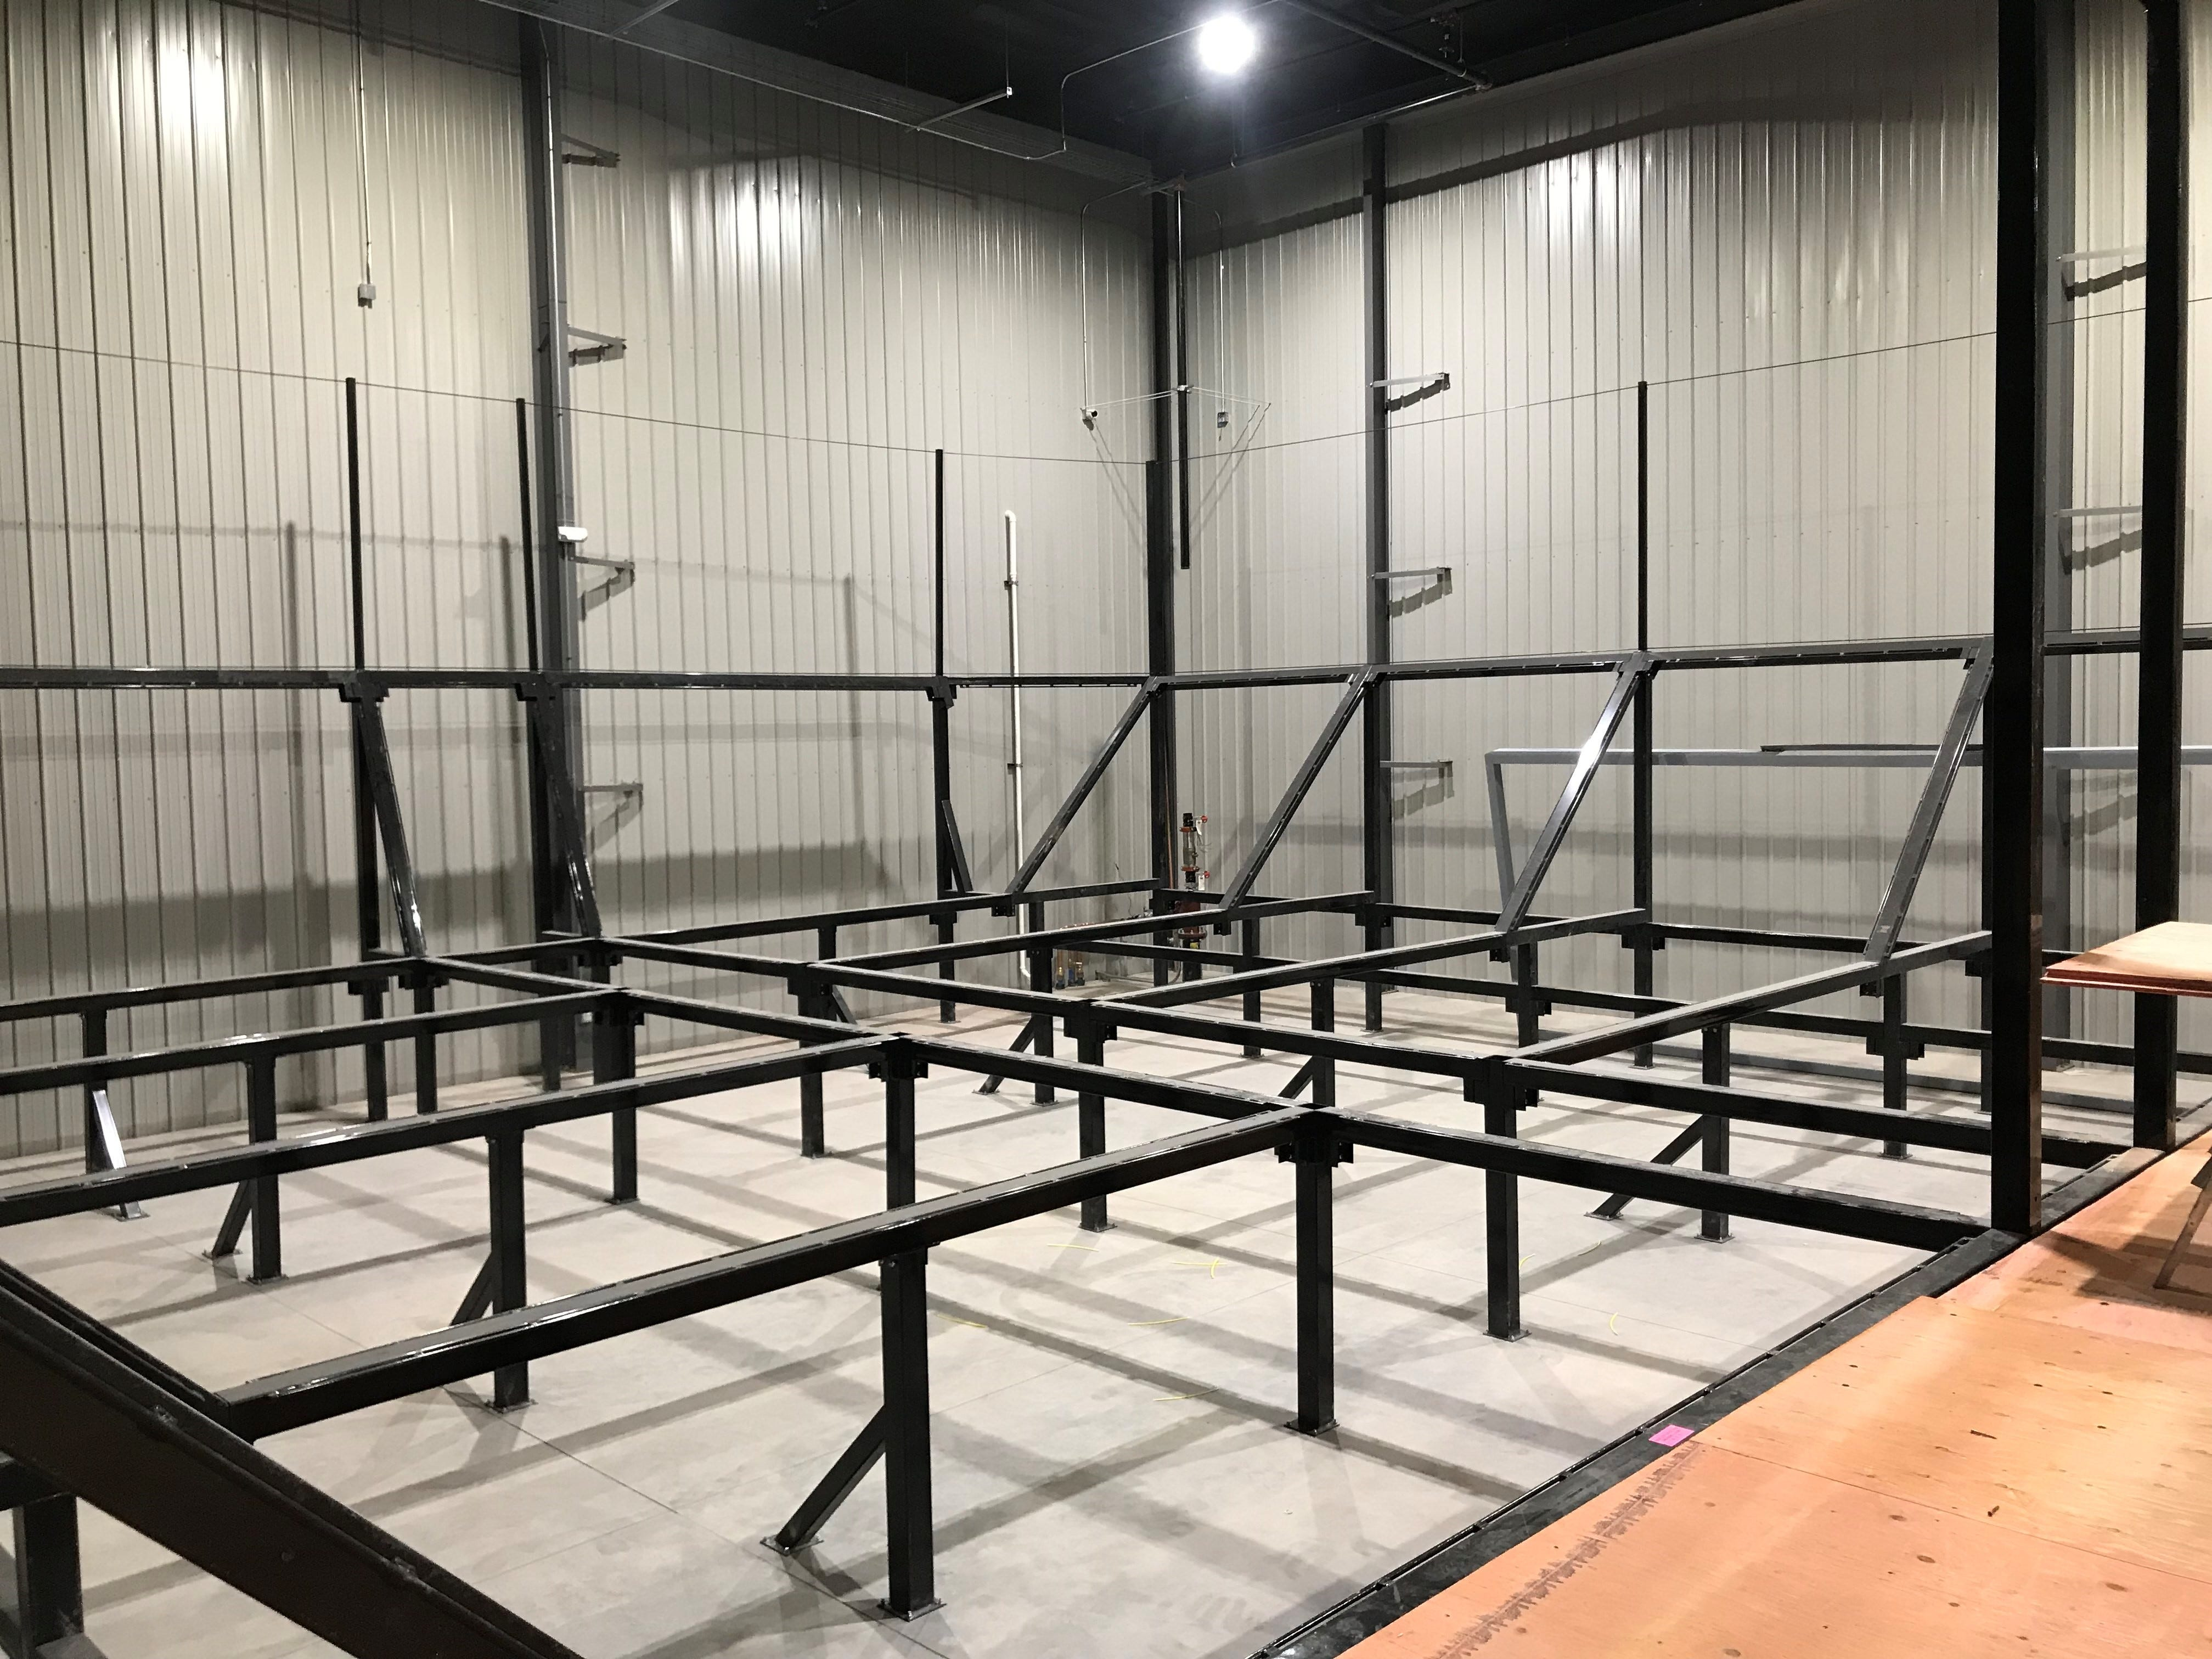 The main trampoline grid for older children will be in the far back corner.